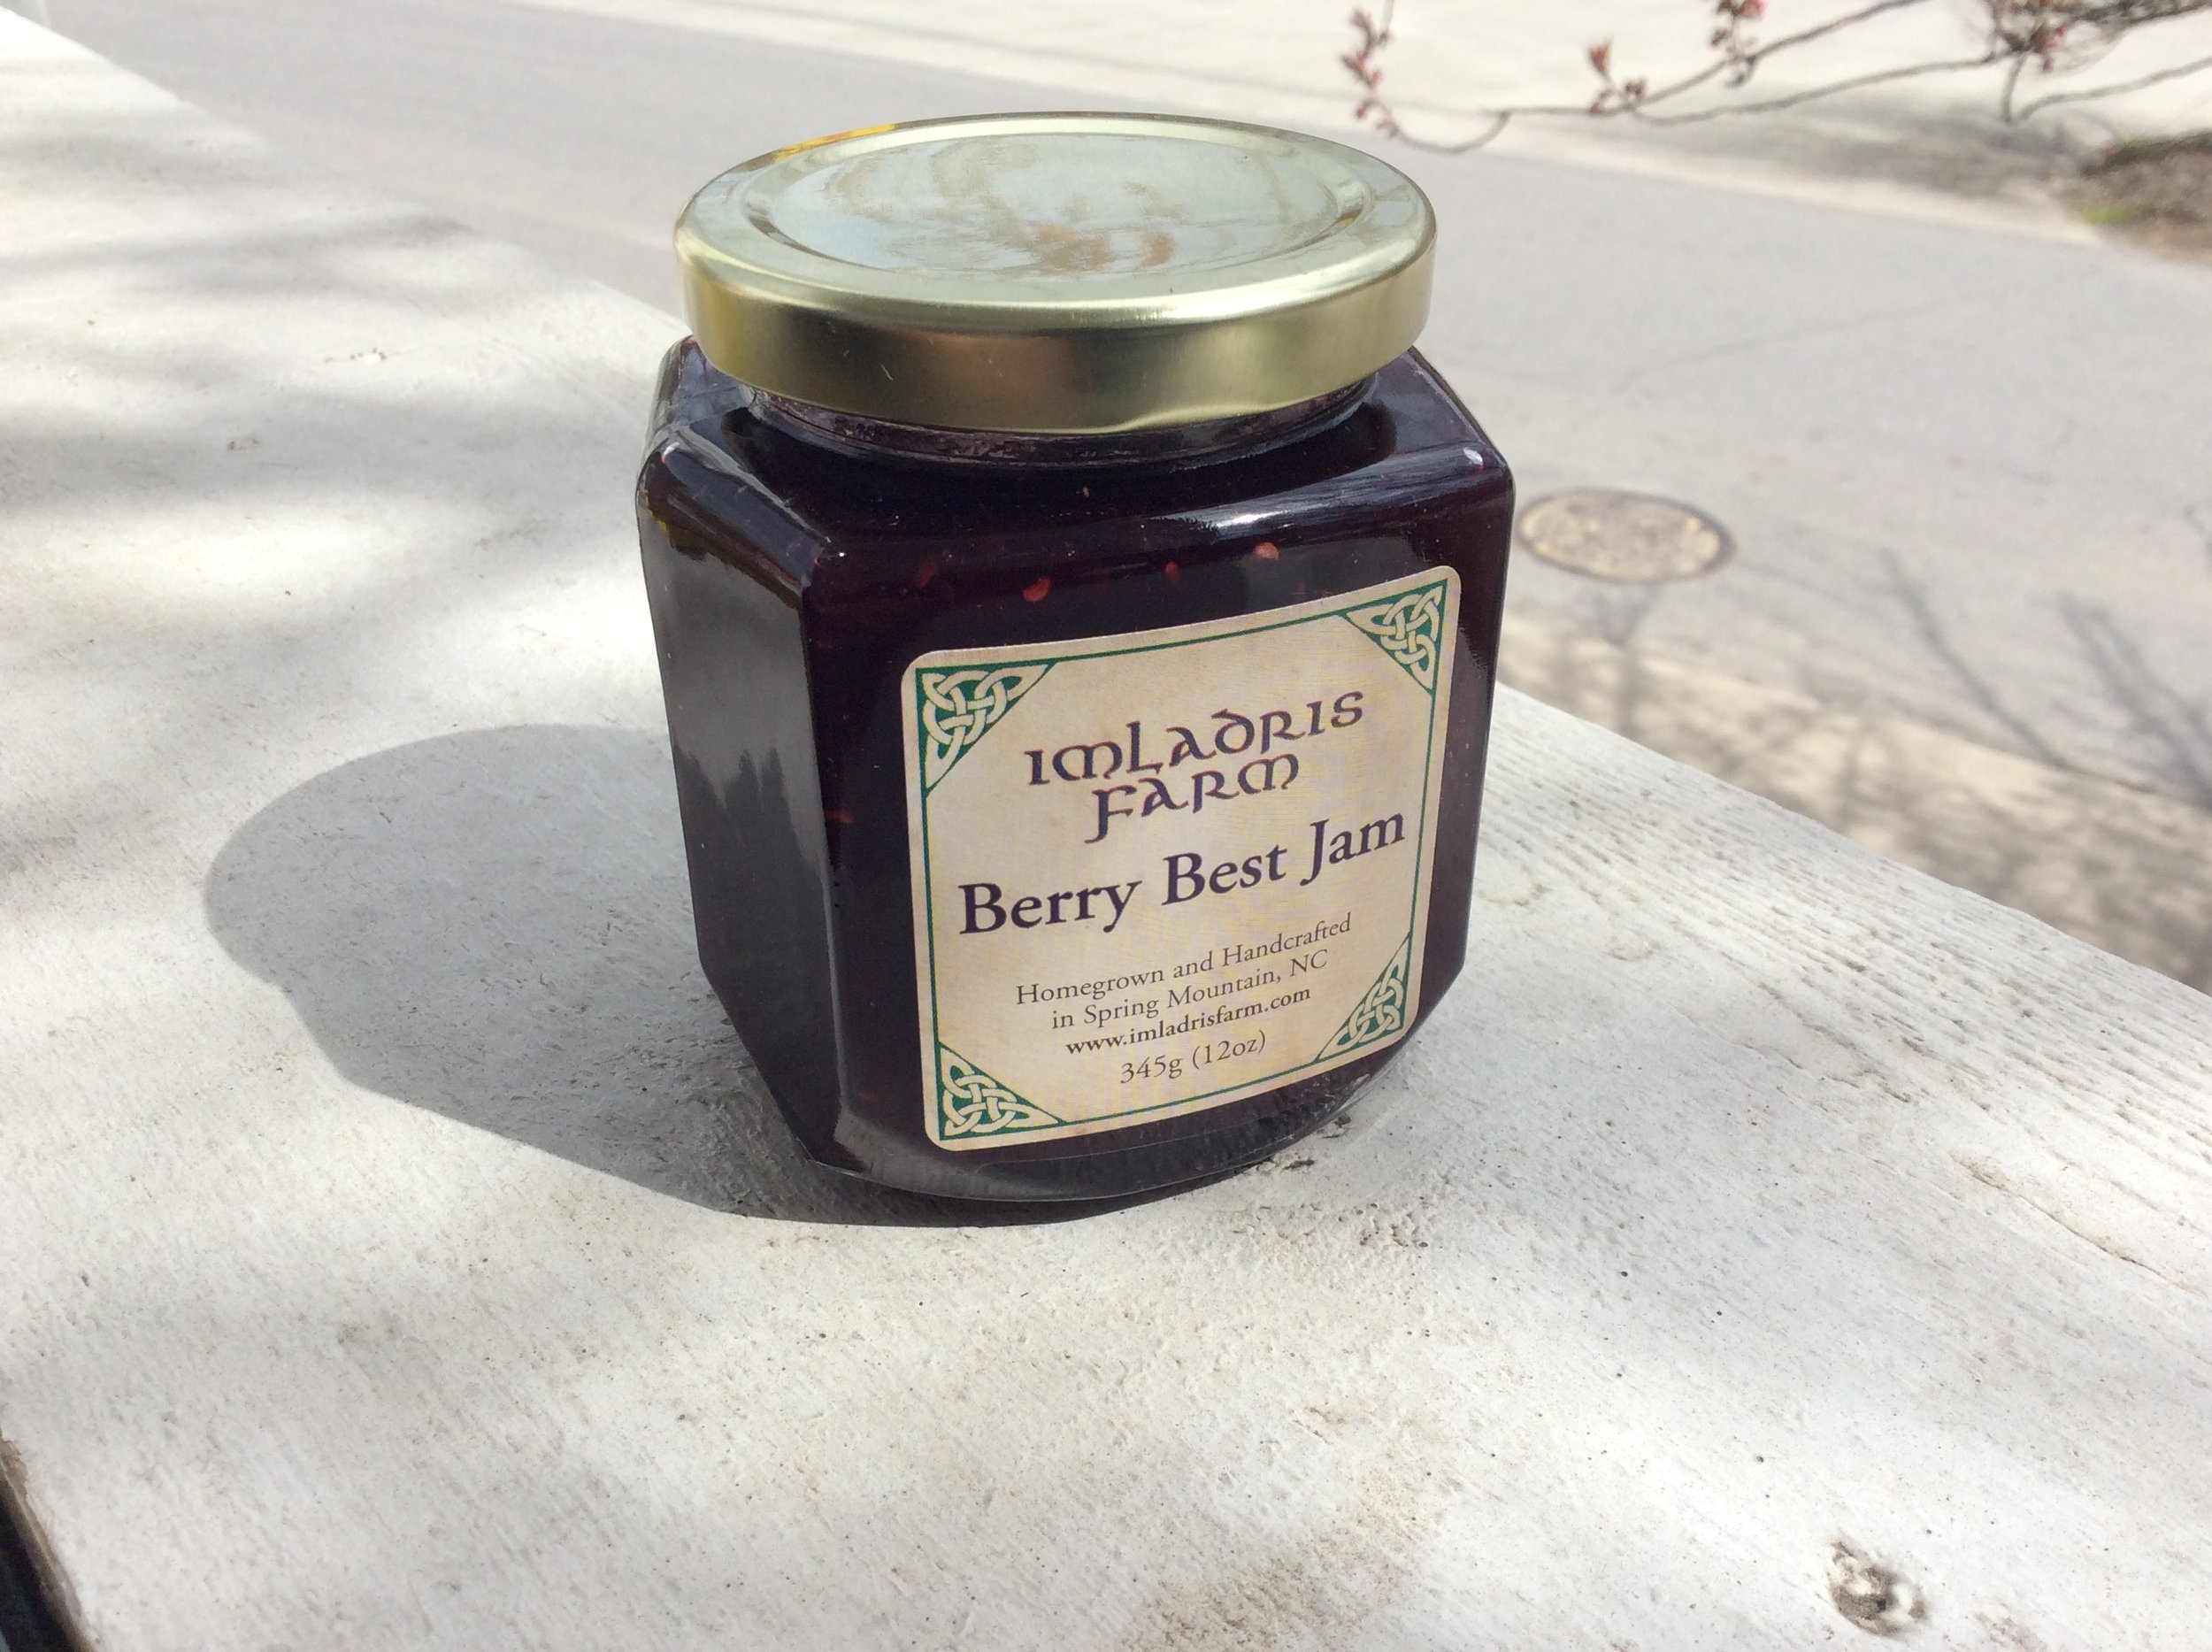 Berry Best Jam - Local jam from Imladris Farm - the best there is! Take a jar home for $7.50